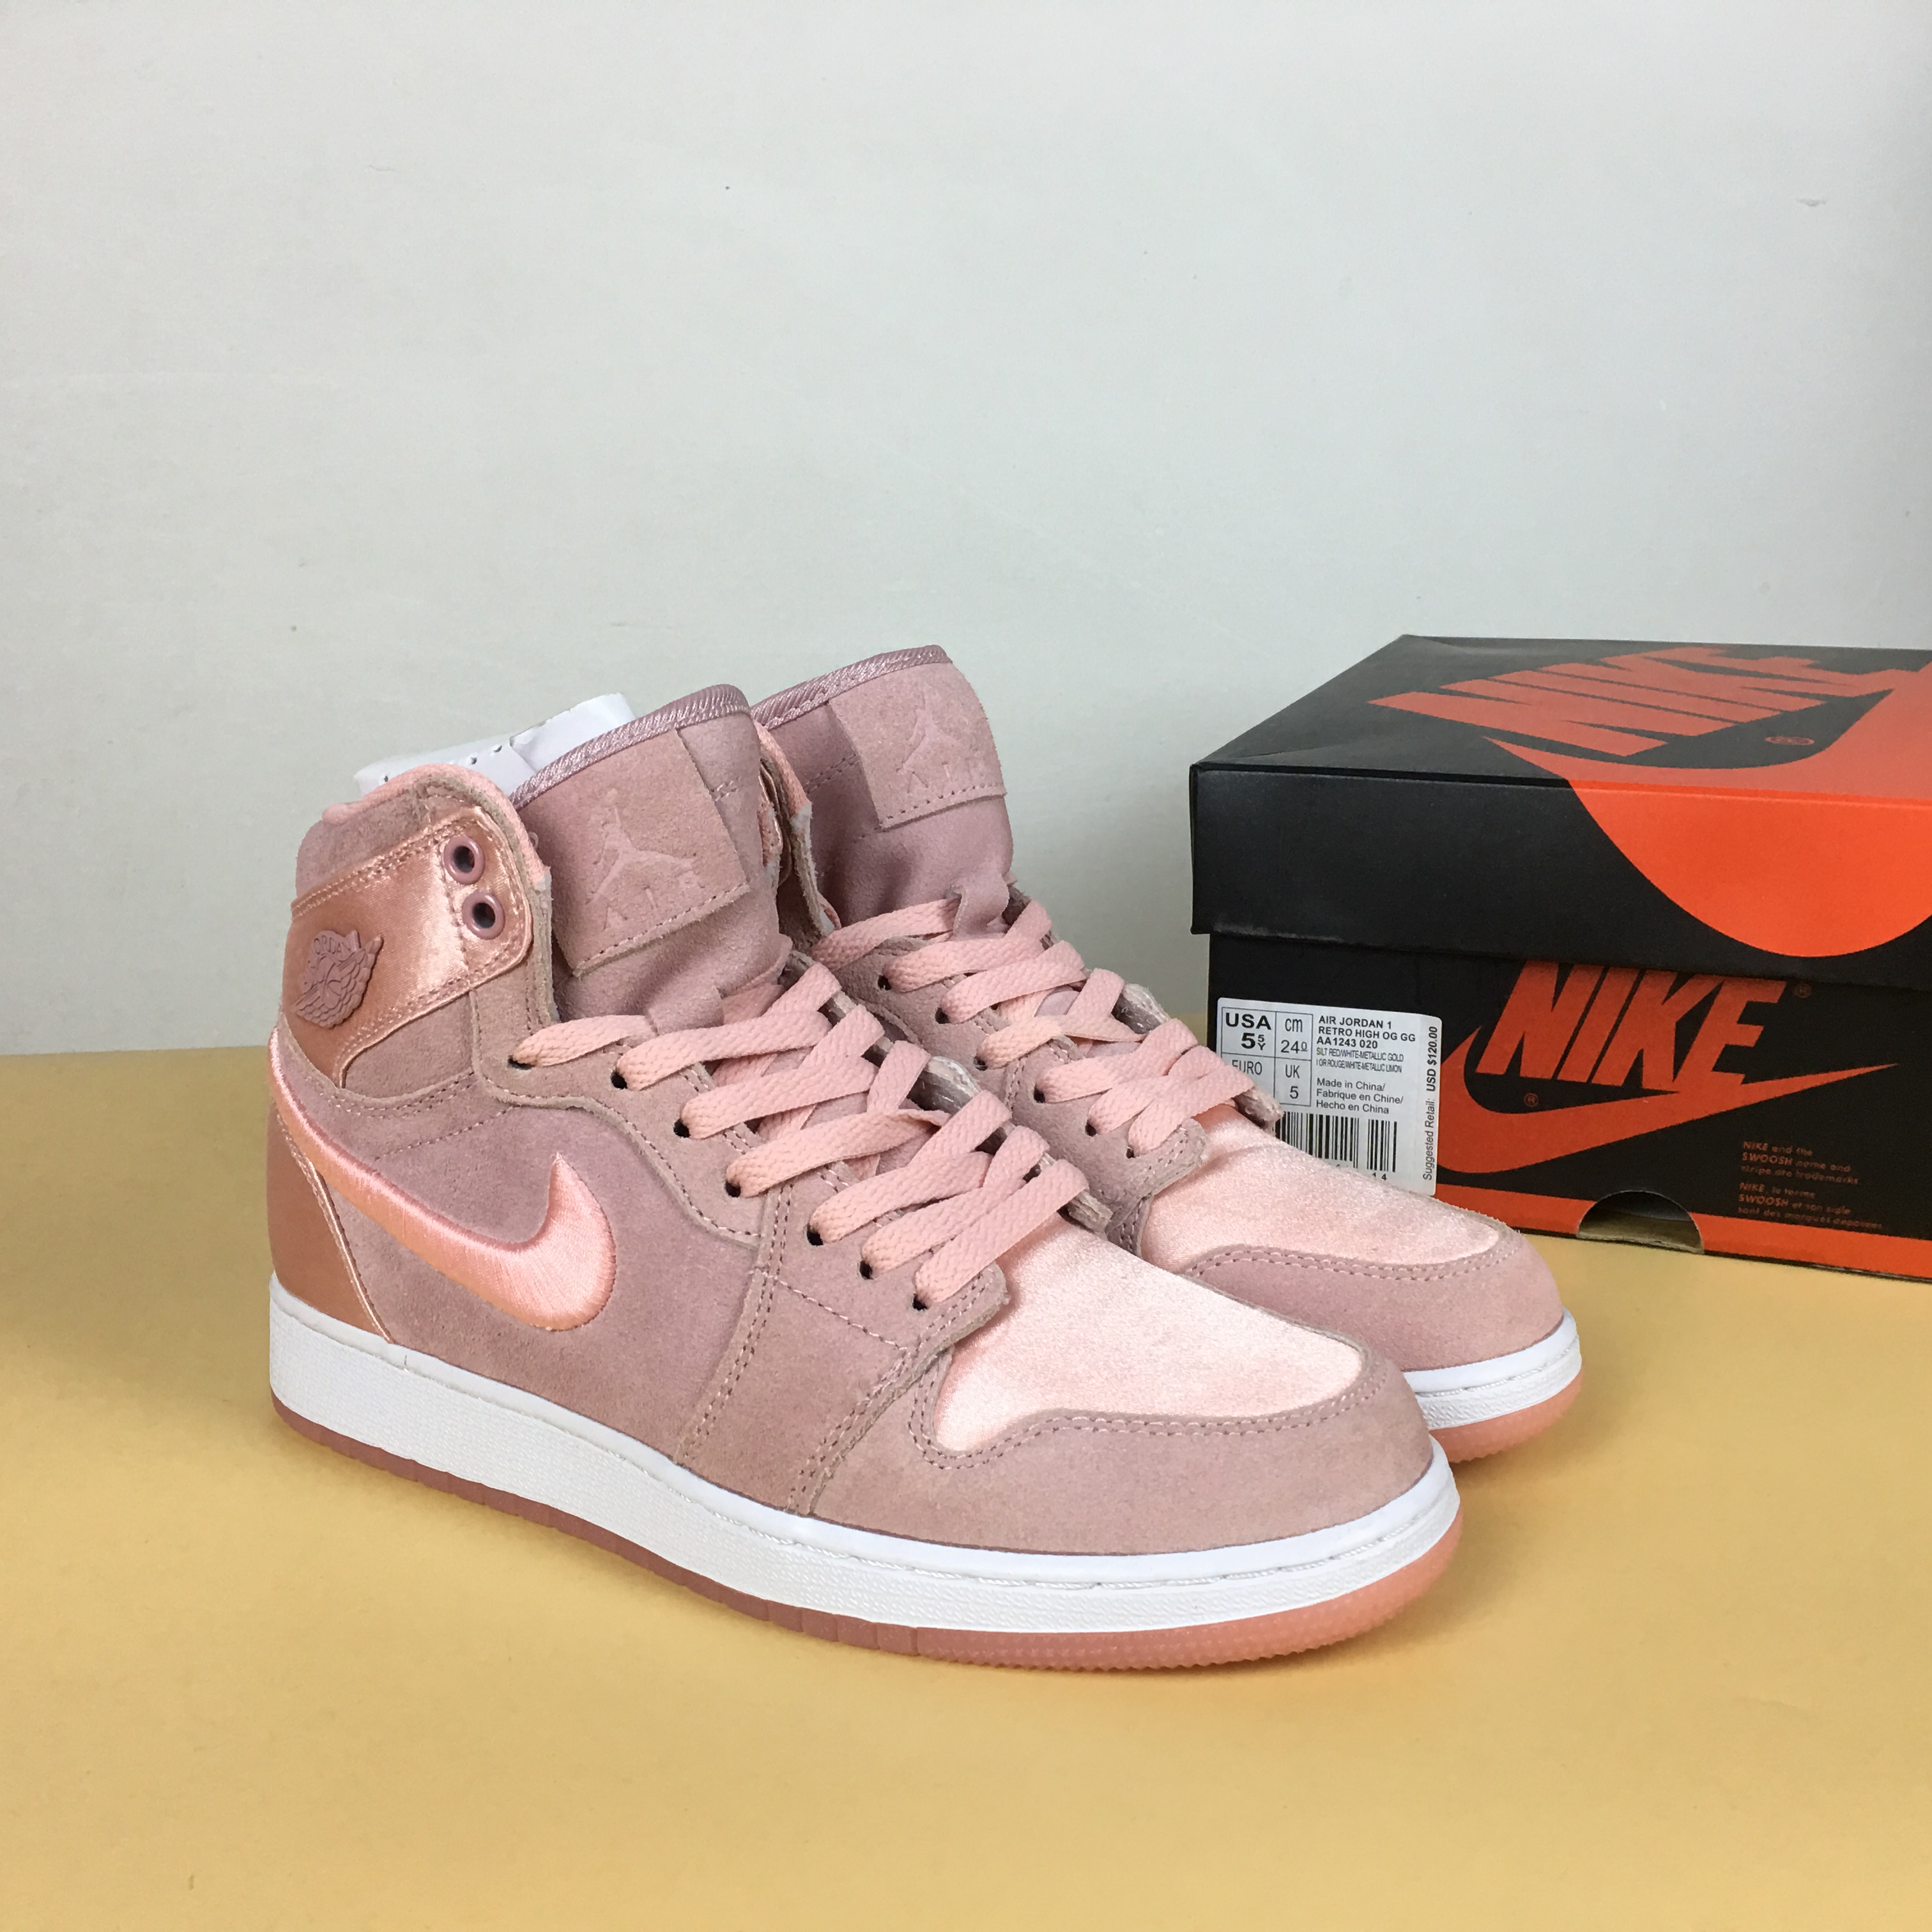 Women Air Jordan 1 Satin Pink Shoes